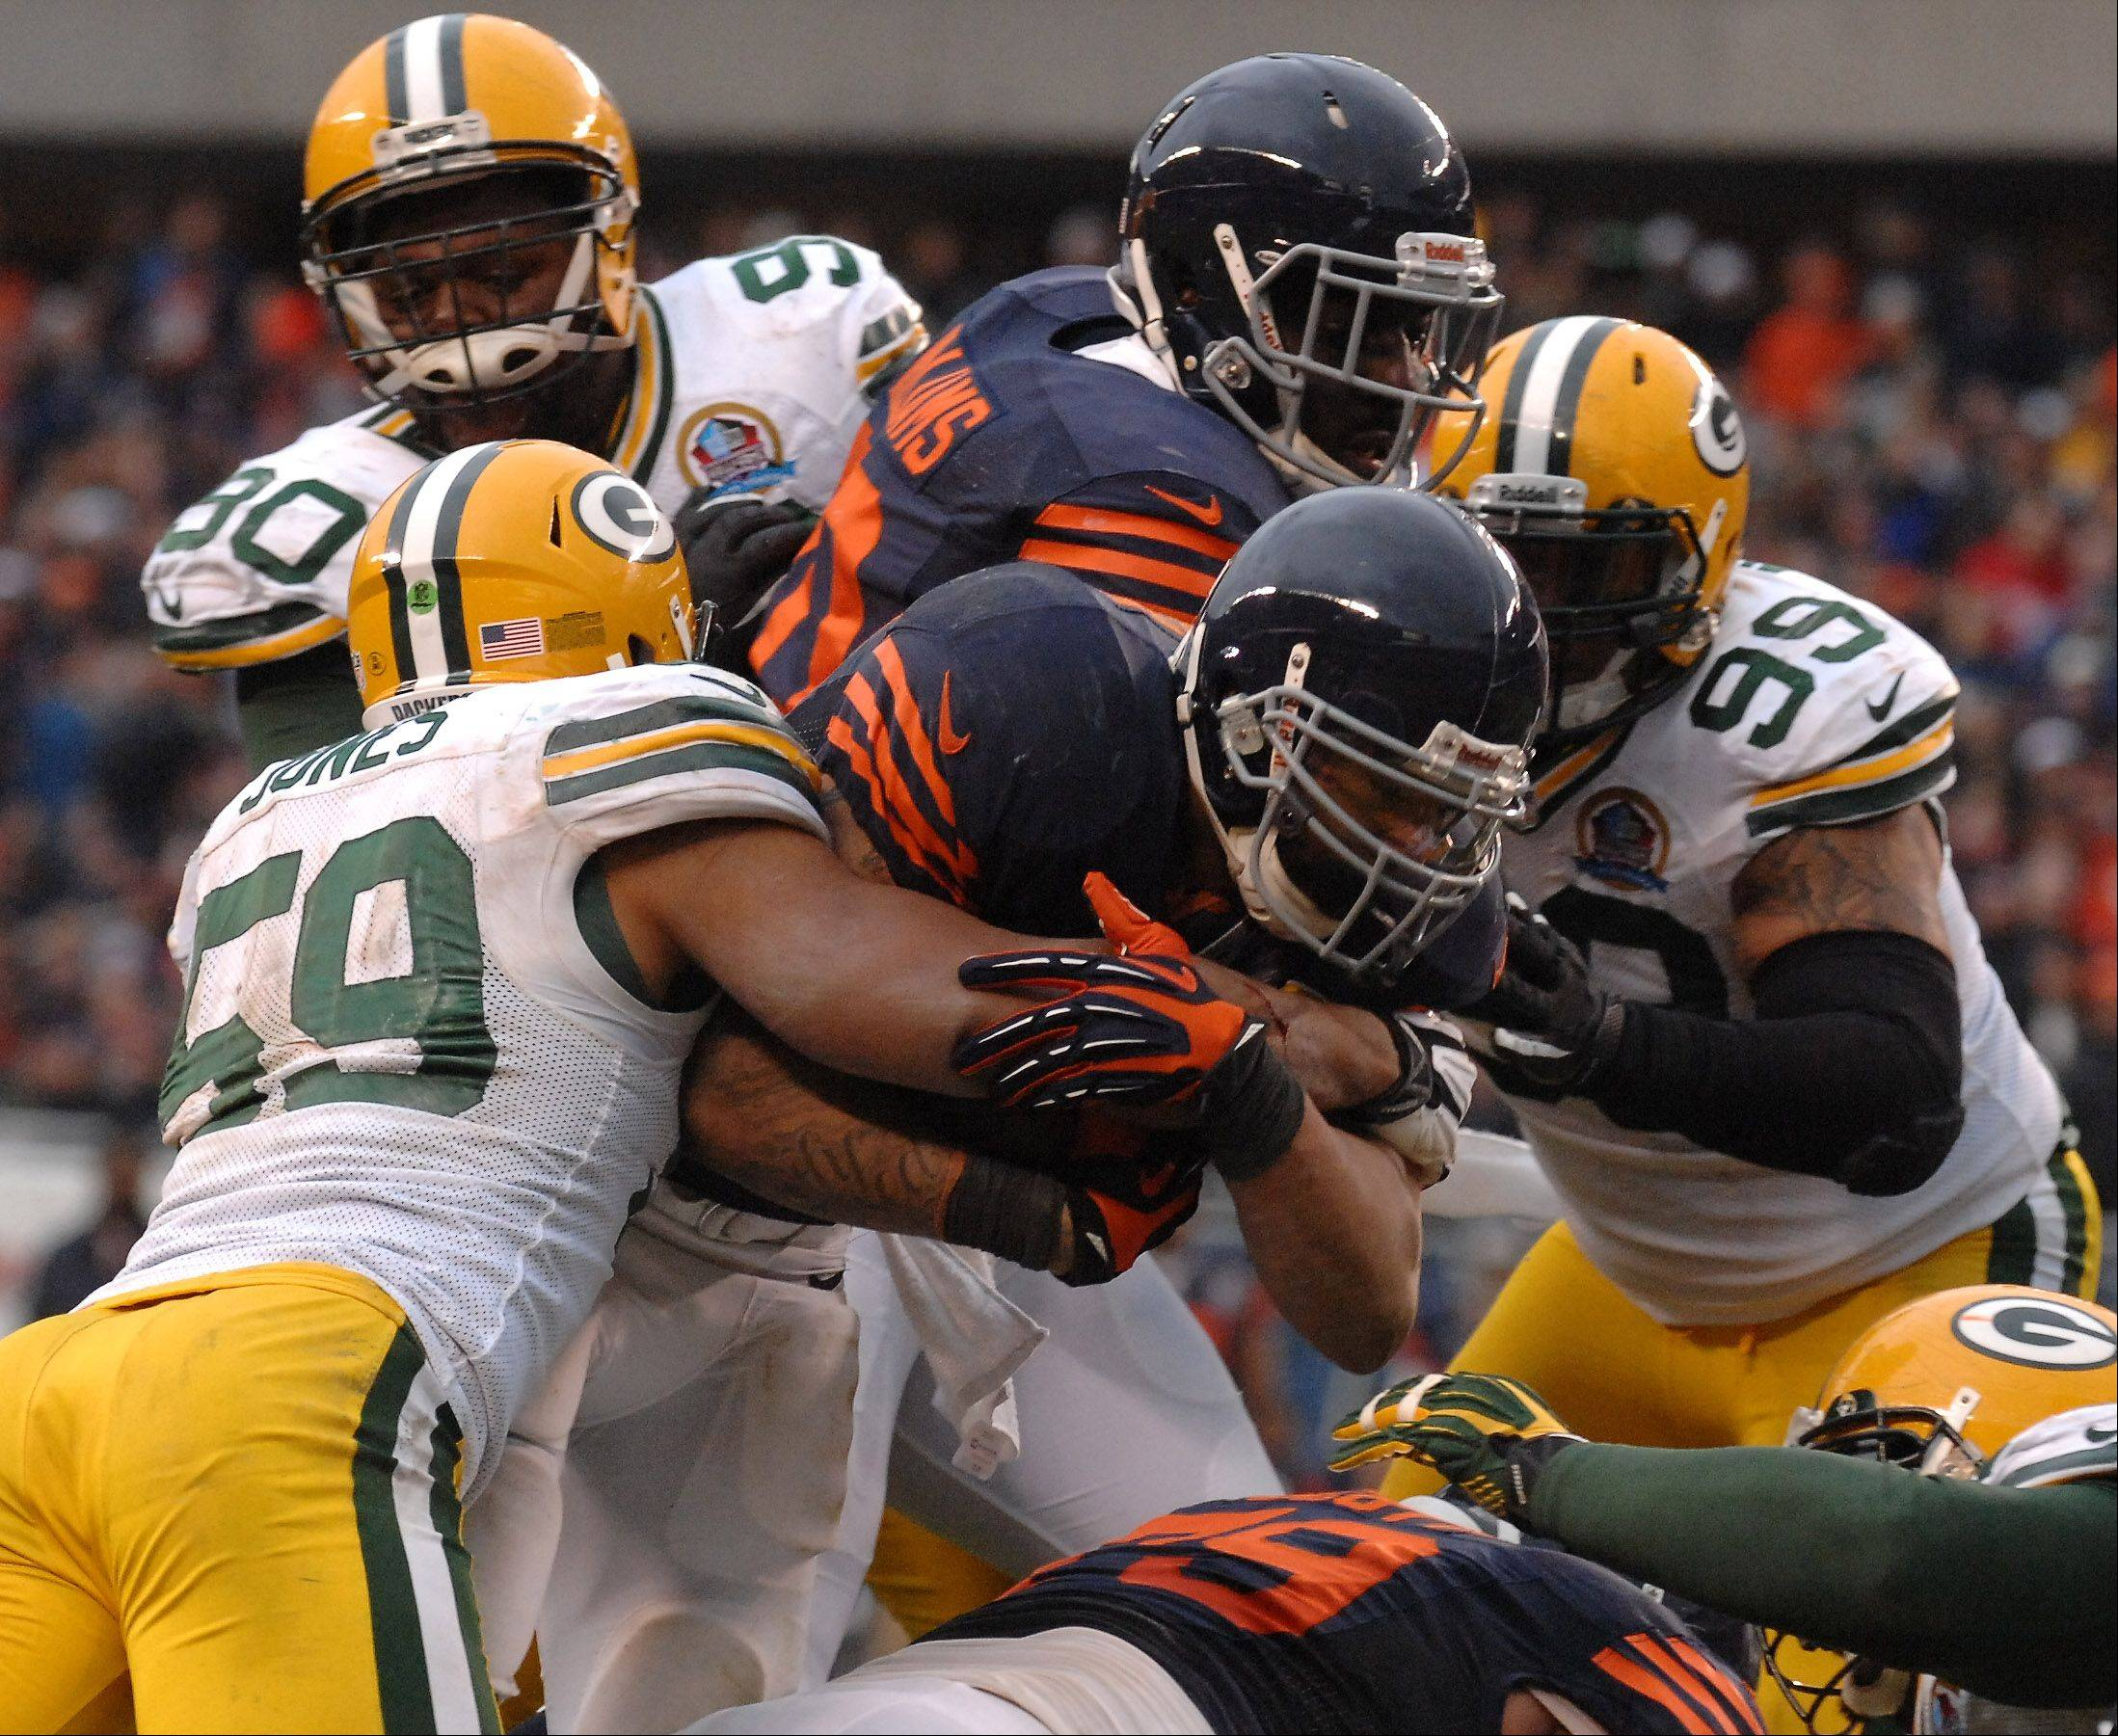 Chicago Bears running back Matt Forte (22) was stopped on three straight goal line carries as the Packers held them to a field goal during Sunday's game at Soldier Field in Chicago.